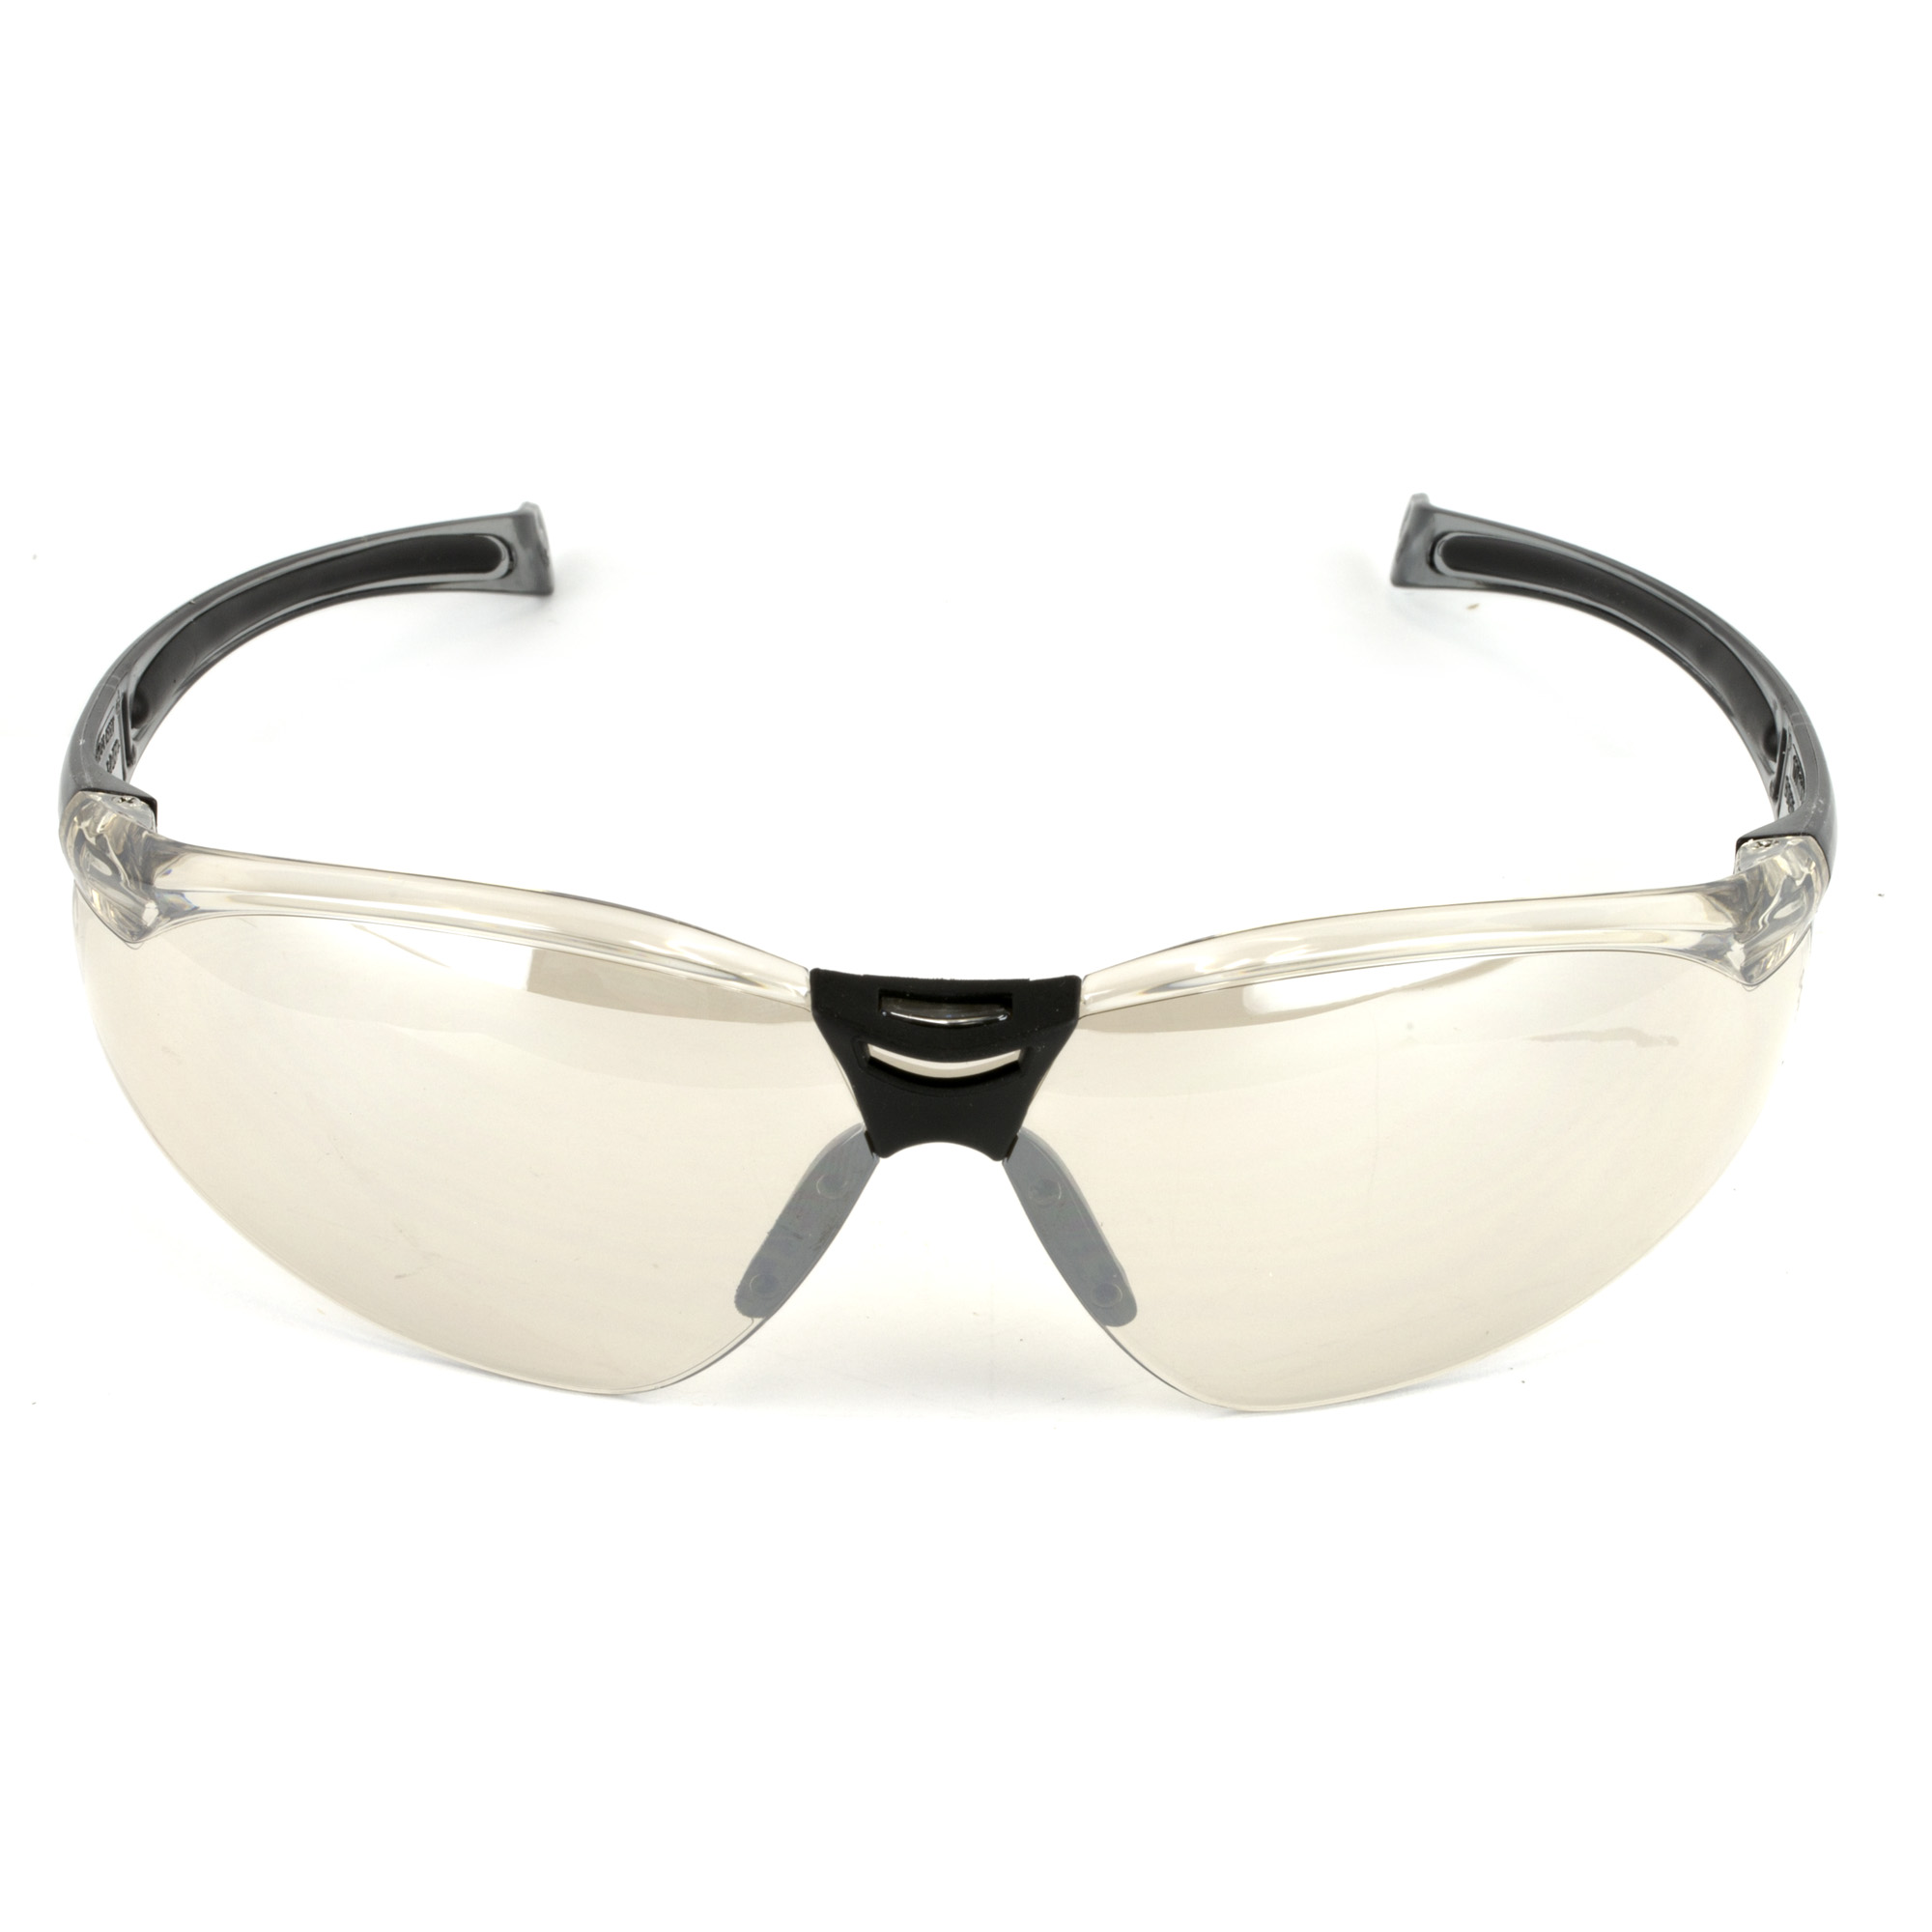 The HL804 features a indoor/outdoor mirror lens tint that is ideal for shooting sports as it minimizes eye strain and fatigue from sun glare. The non-slip rubber nose bridge conforms to various nose shapes. A wrap-around 9-base polycarbonate lens offers superior protection and provides a 180 degree field of distortion-free vision.